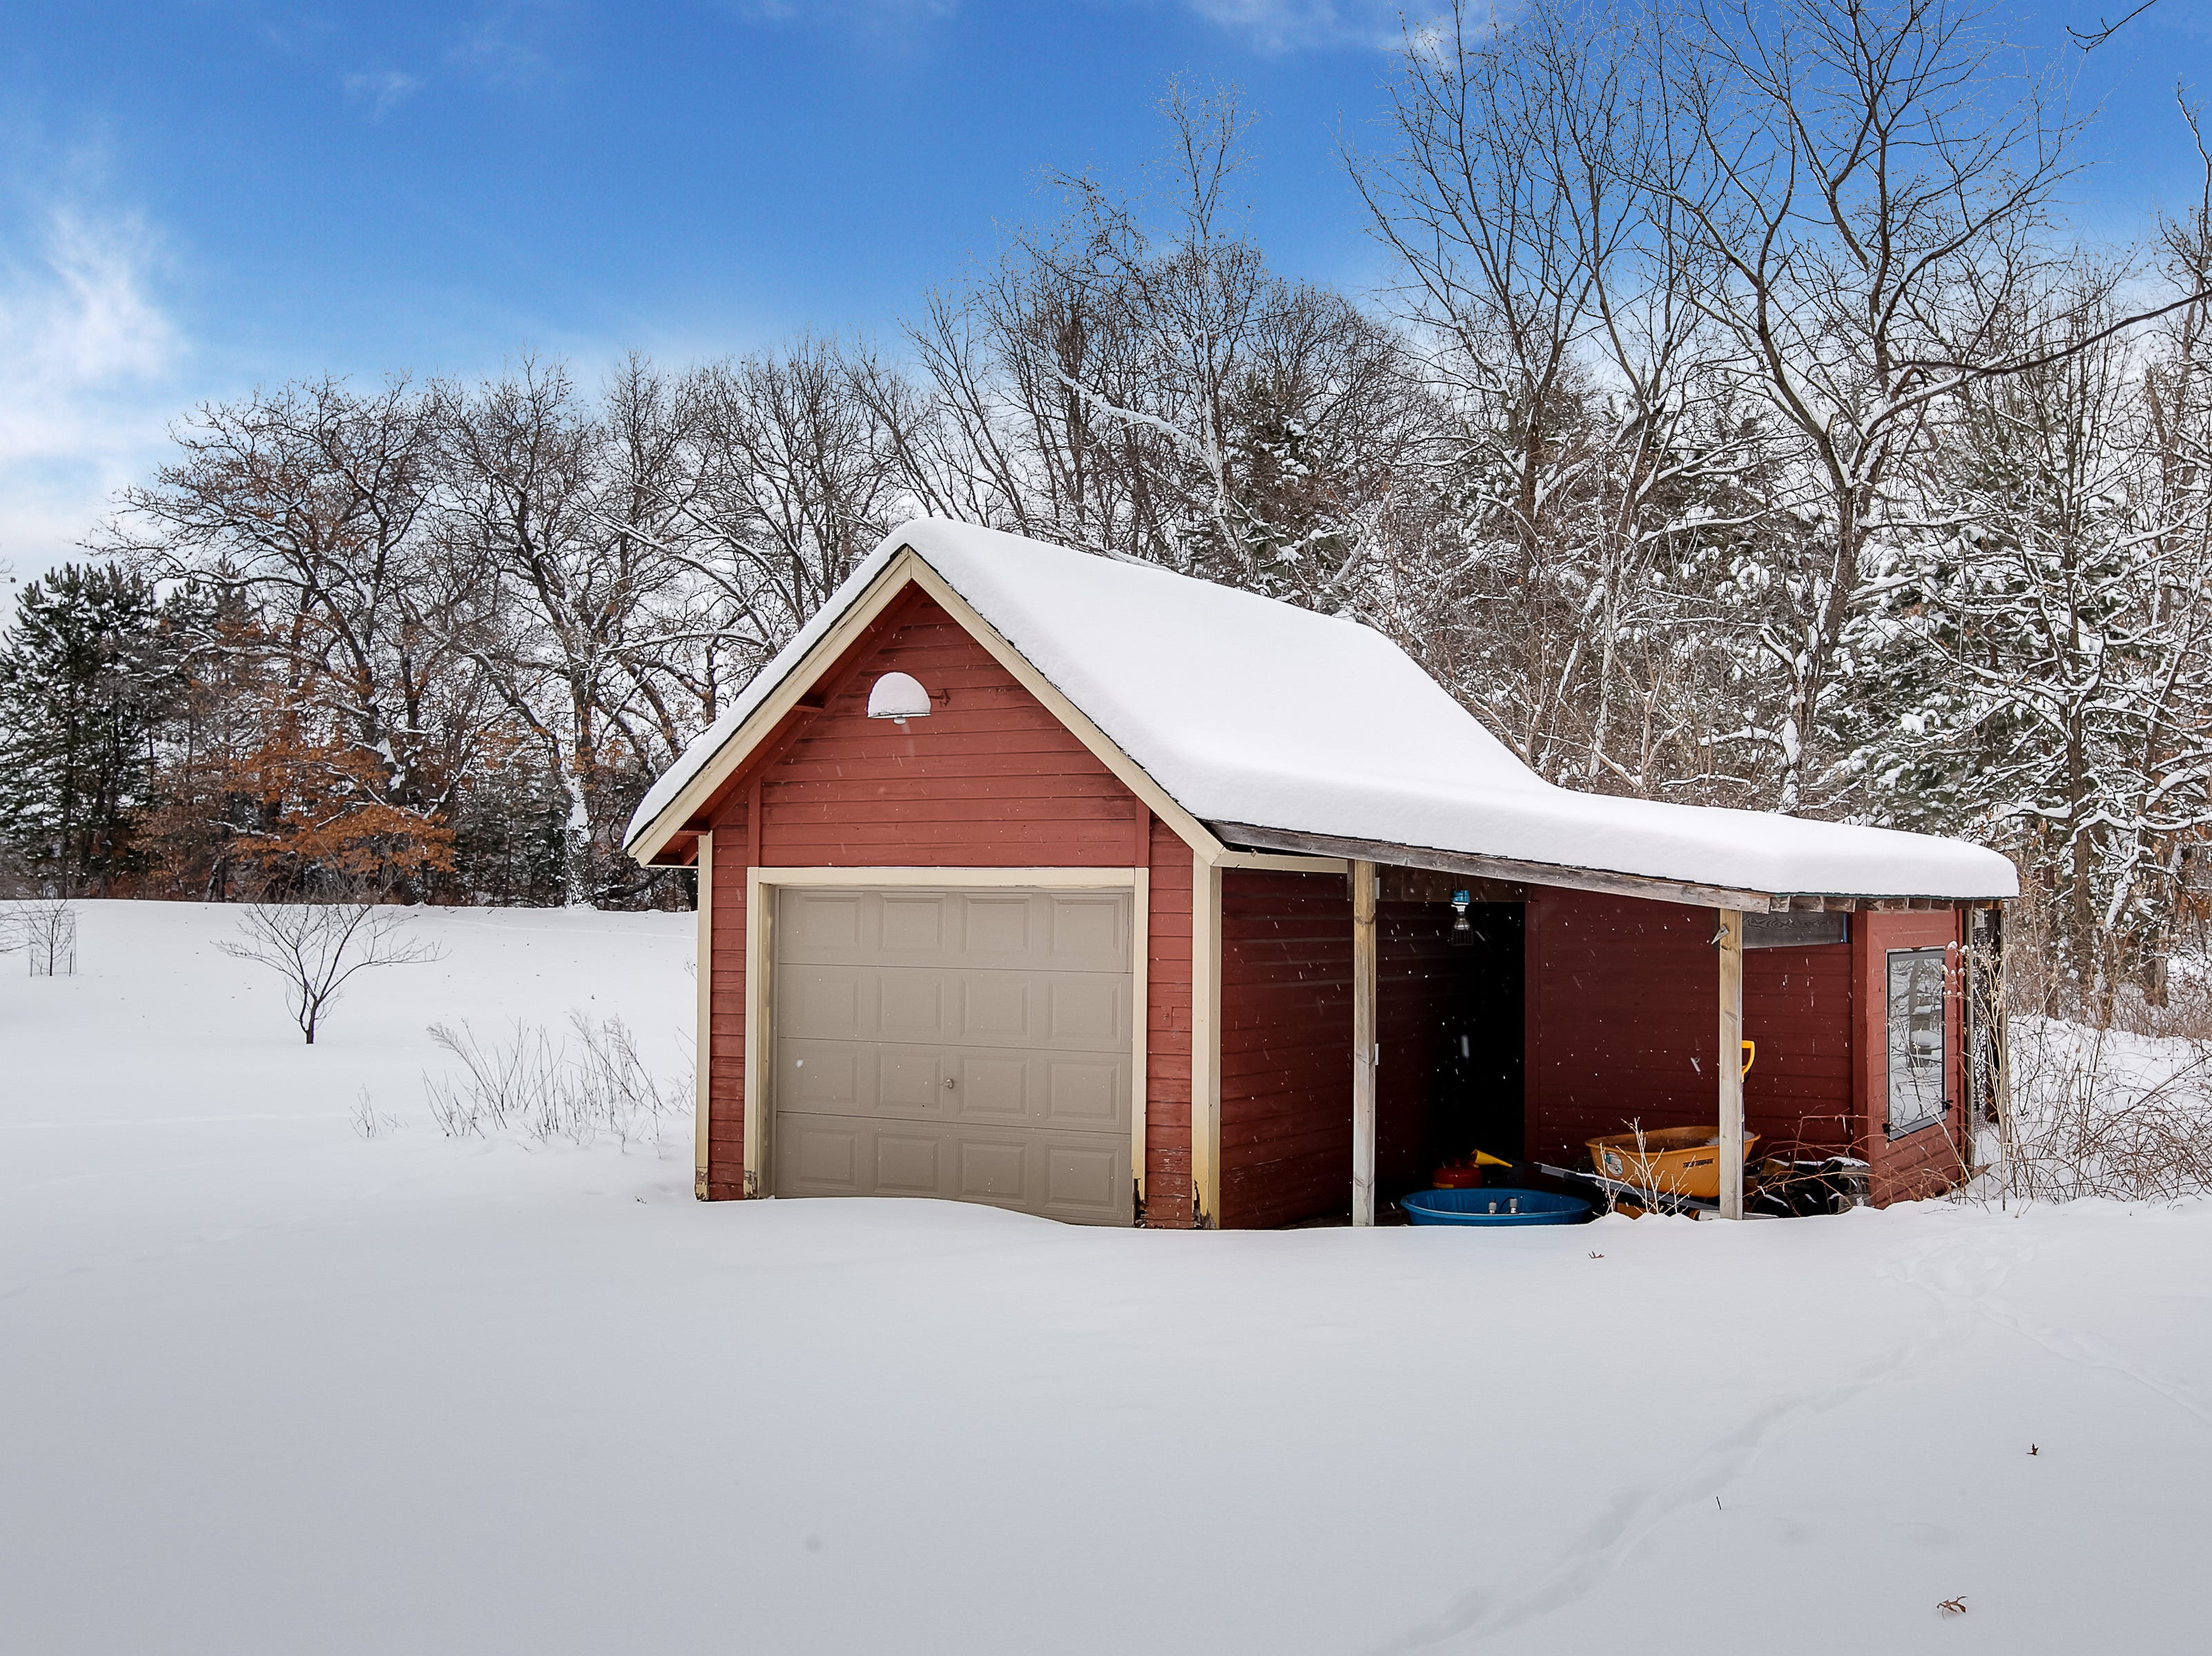 The property beyond the home offers a large garden shed with an attached chicken coop.